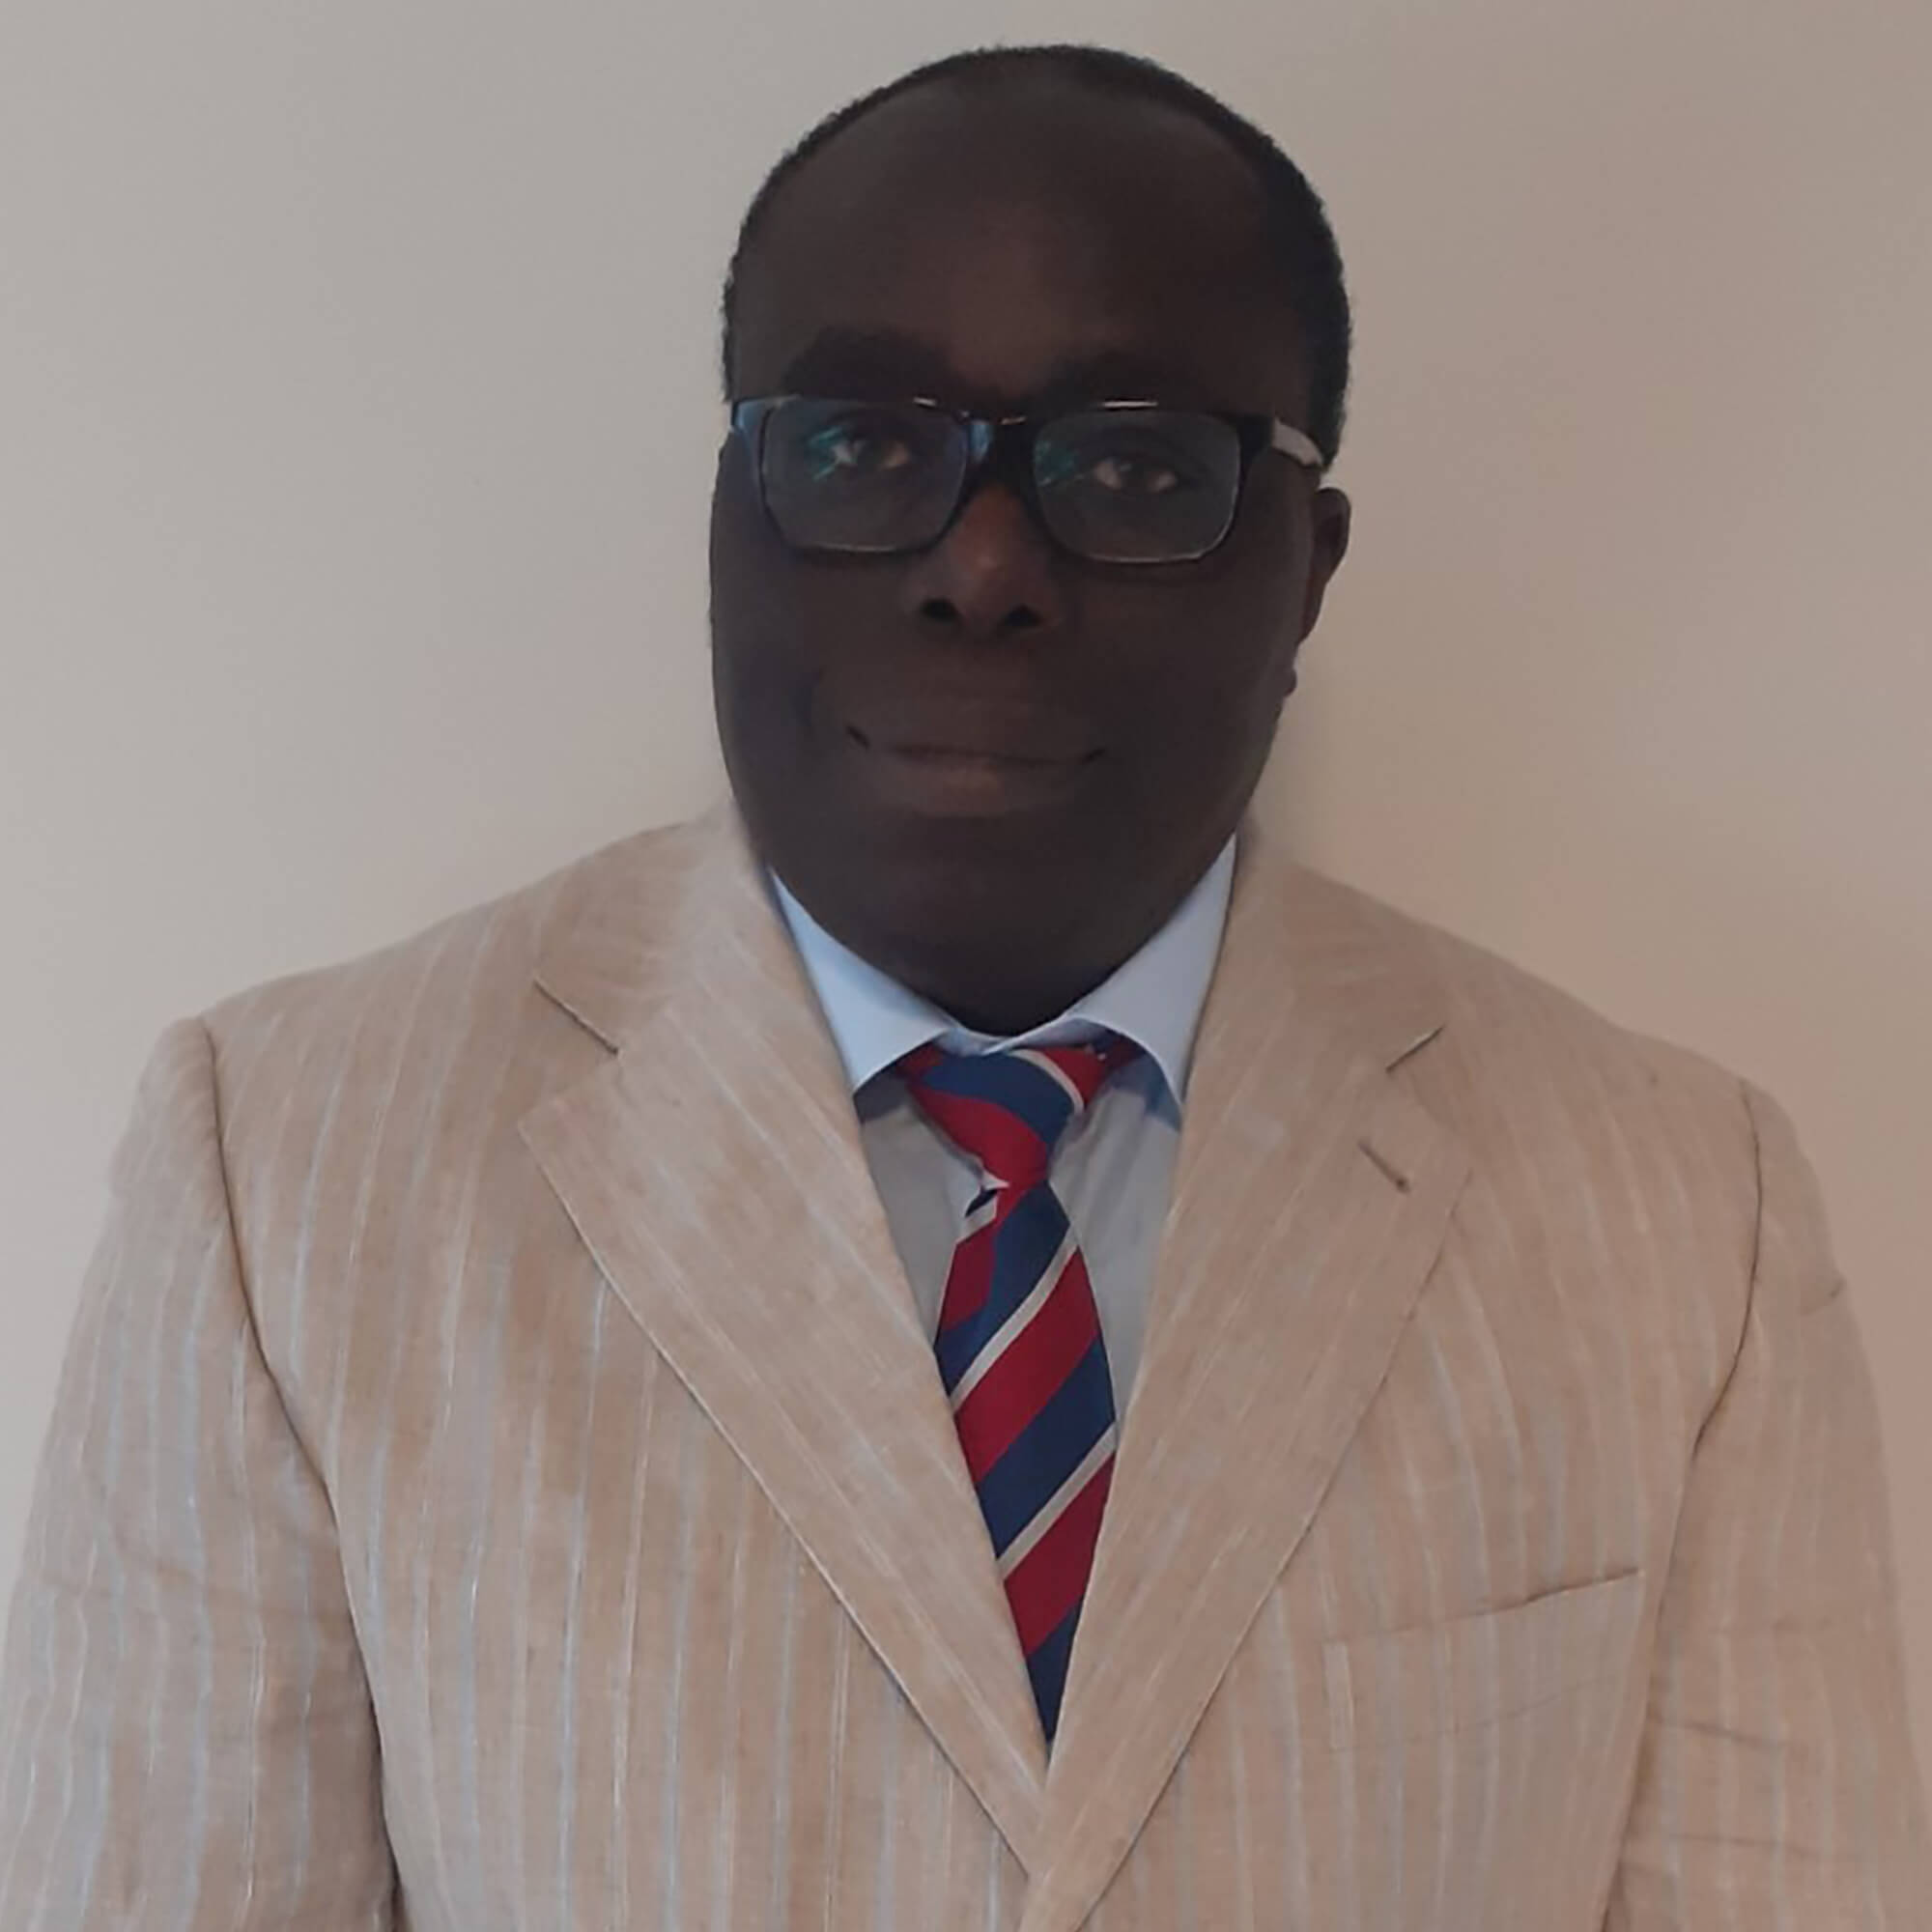 Taiwo wearing a suit and tie